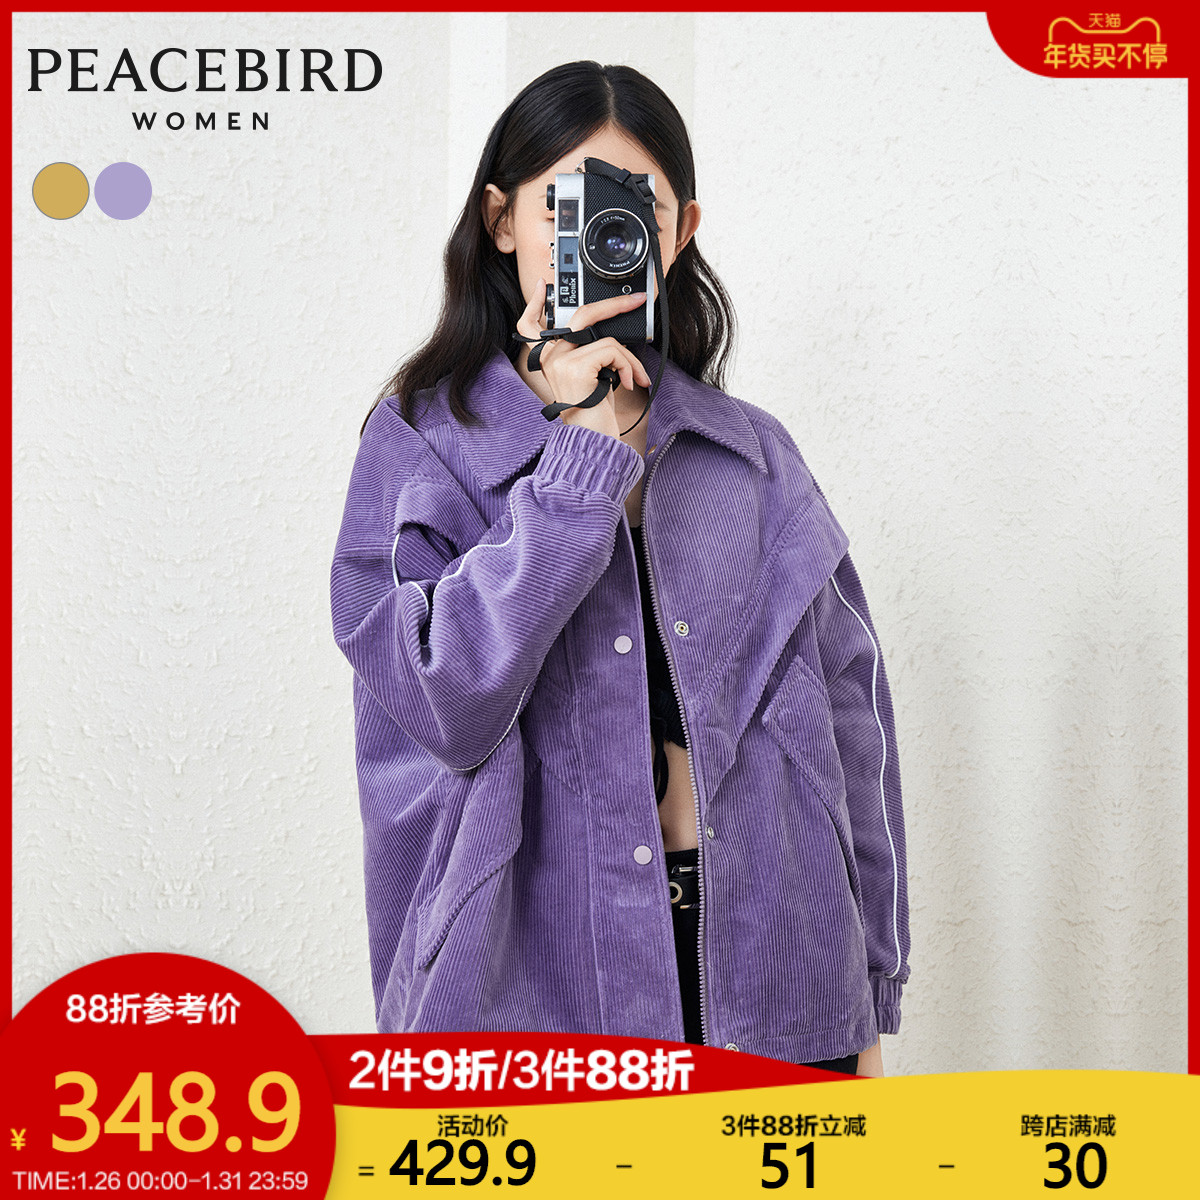 Peacebird purple corduroy jacket women 2020 autumn new style Korean loose casual retro jacket fashion trend